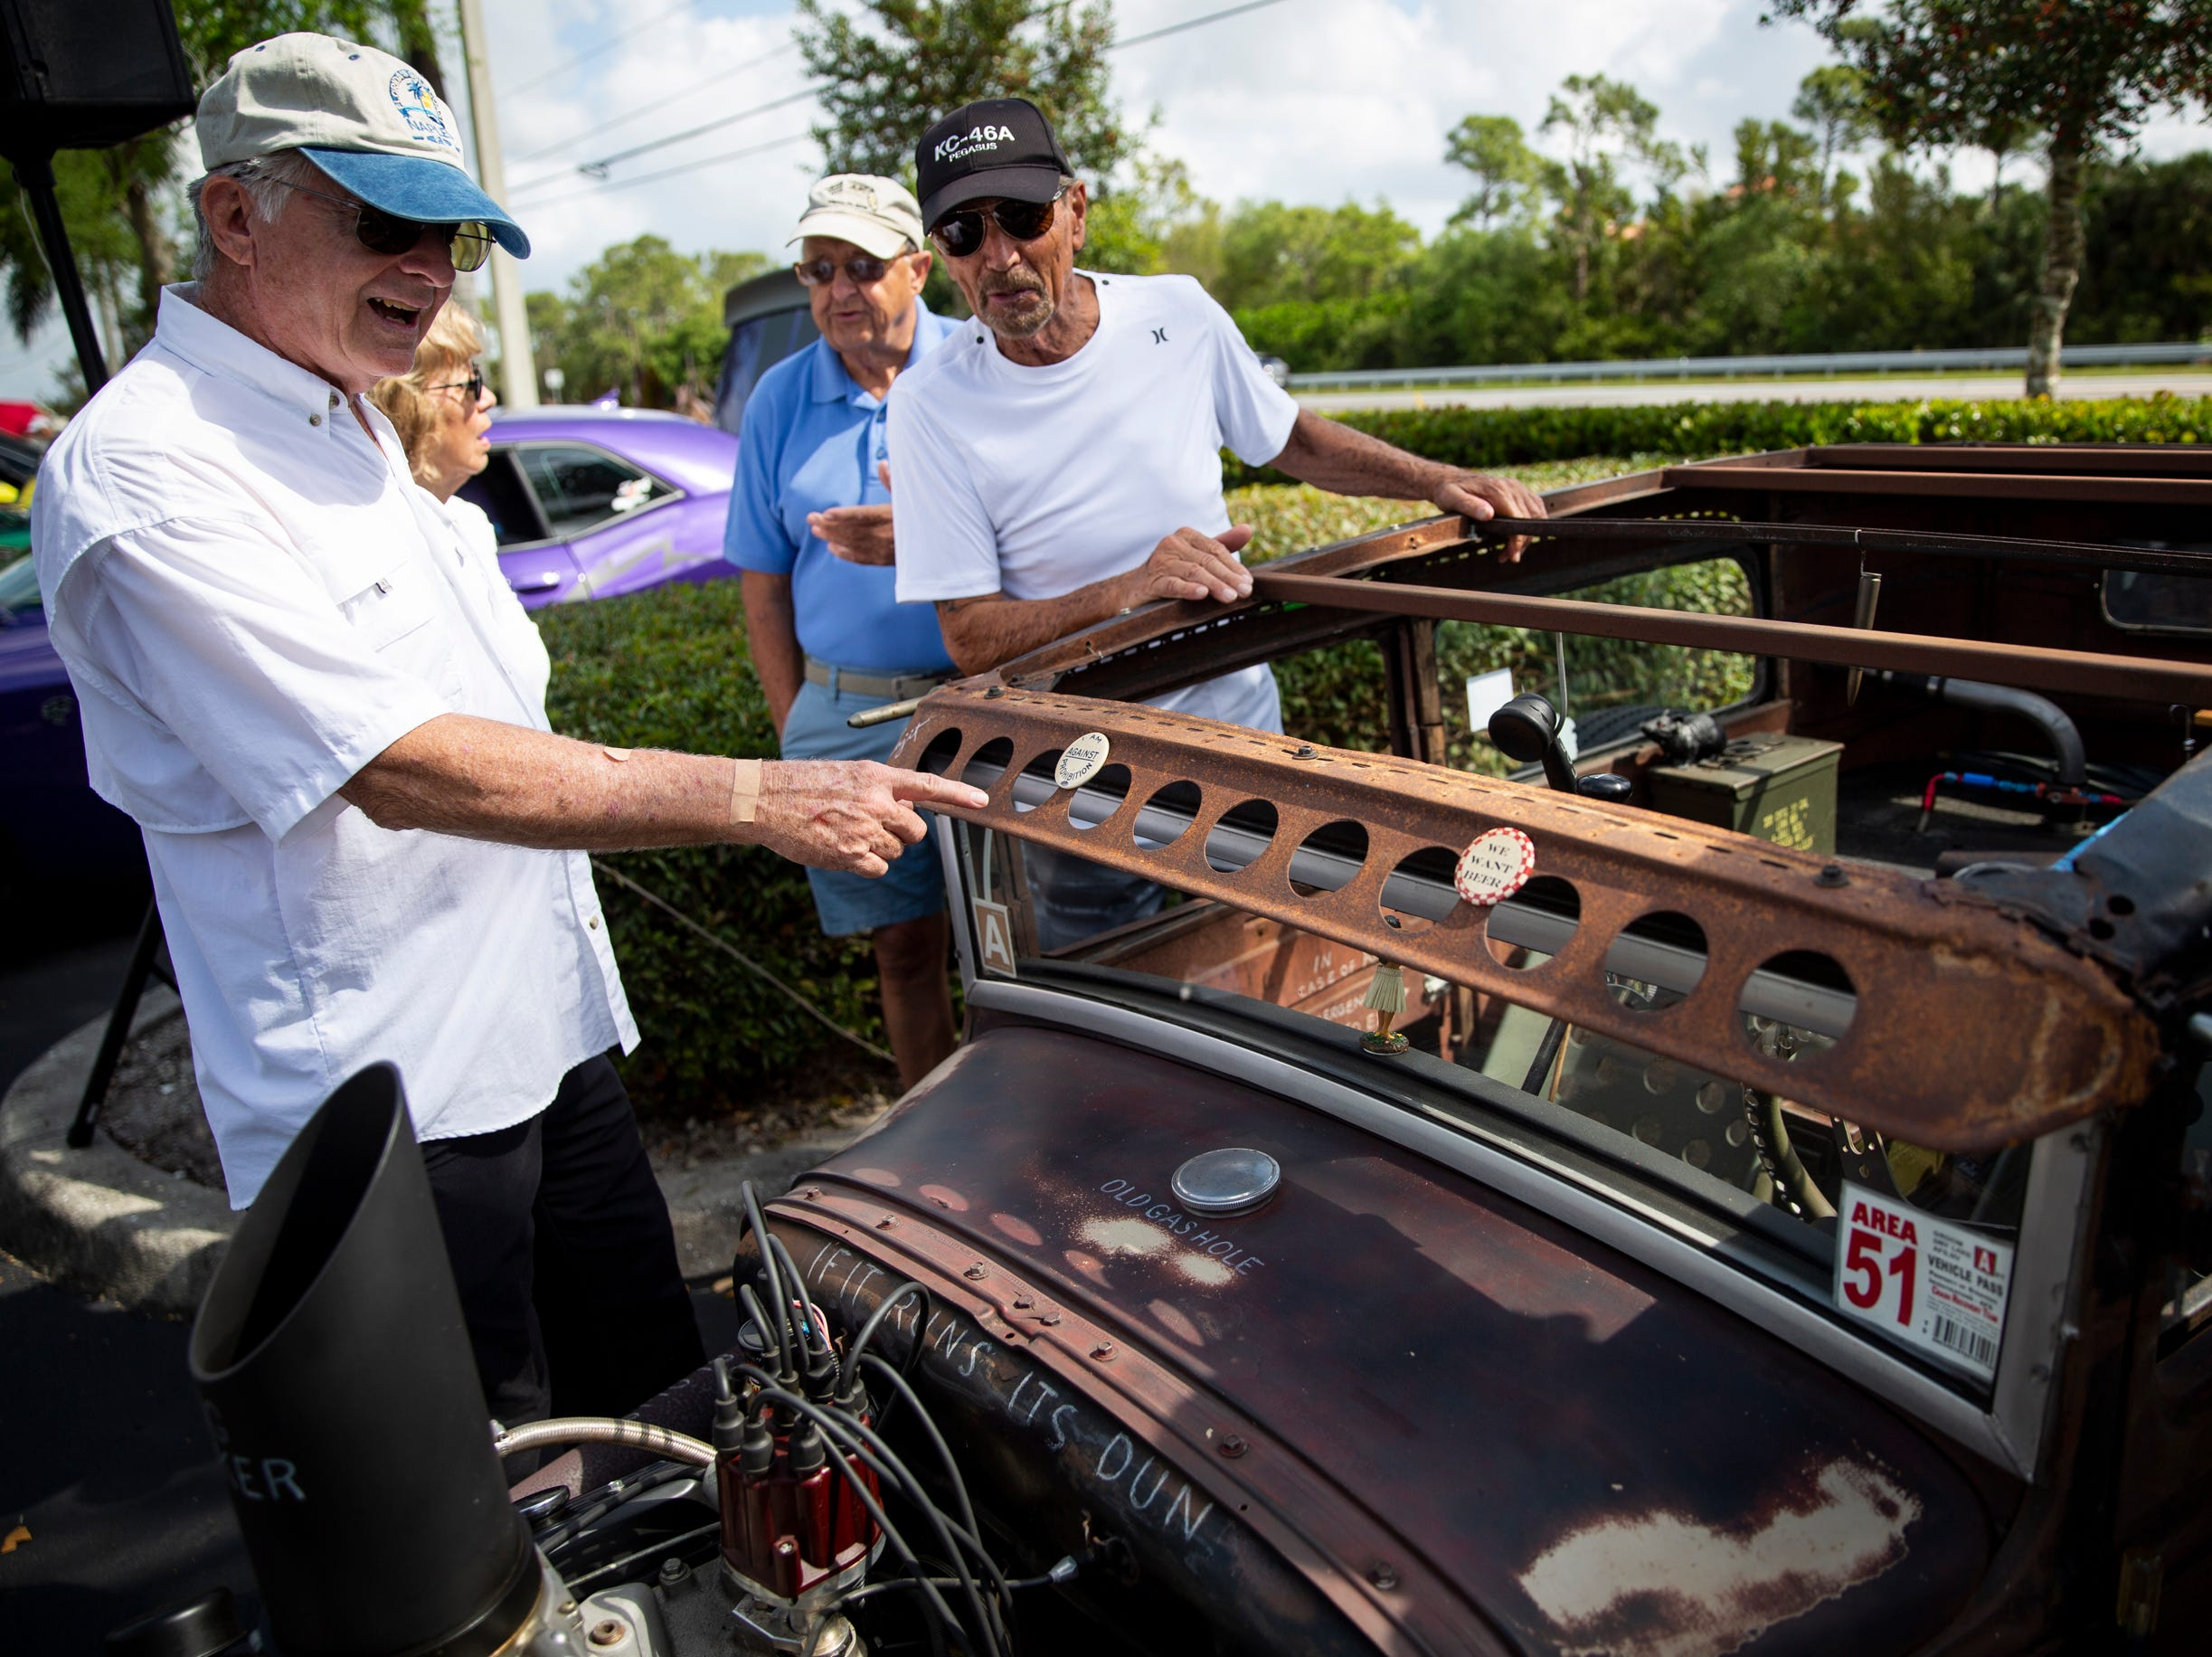 Roger Rose, left, talks to Barry Grothause, right, about his 1931 Ford Rat Rod during the West Coast Muscle Car Club's 15th annual car and truck show at the Galleria Shoppes at Vanderbilt in North Naples on Sunday, March 10, 2019.